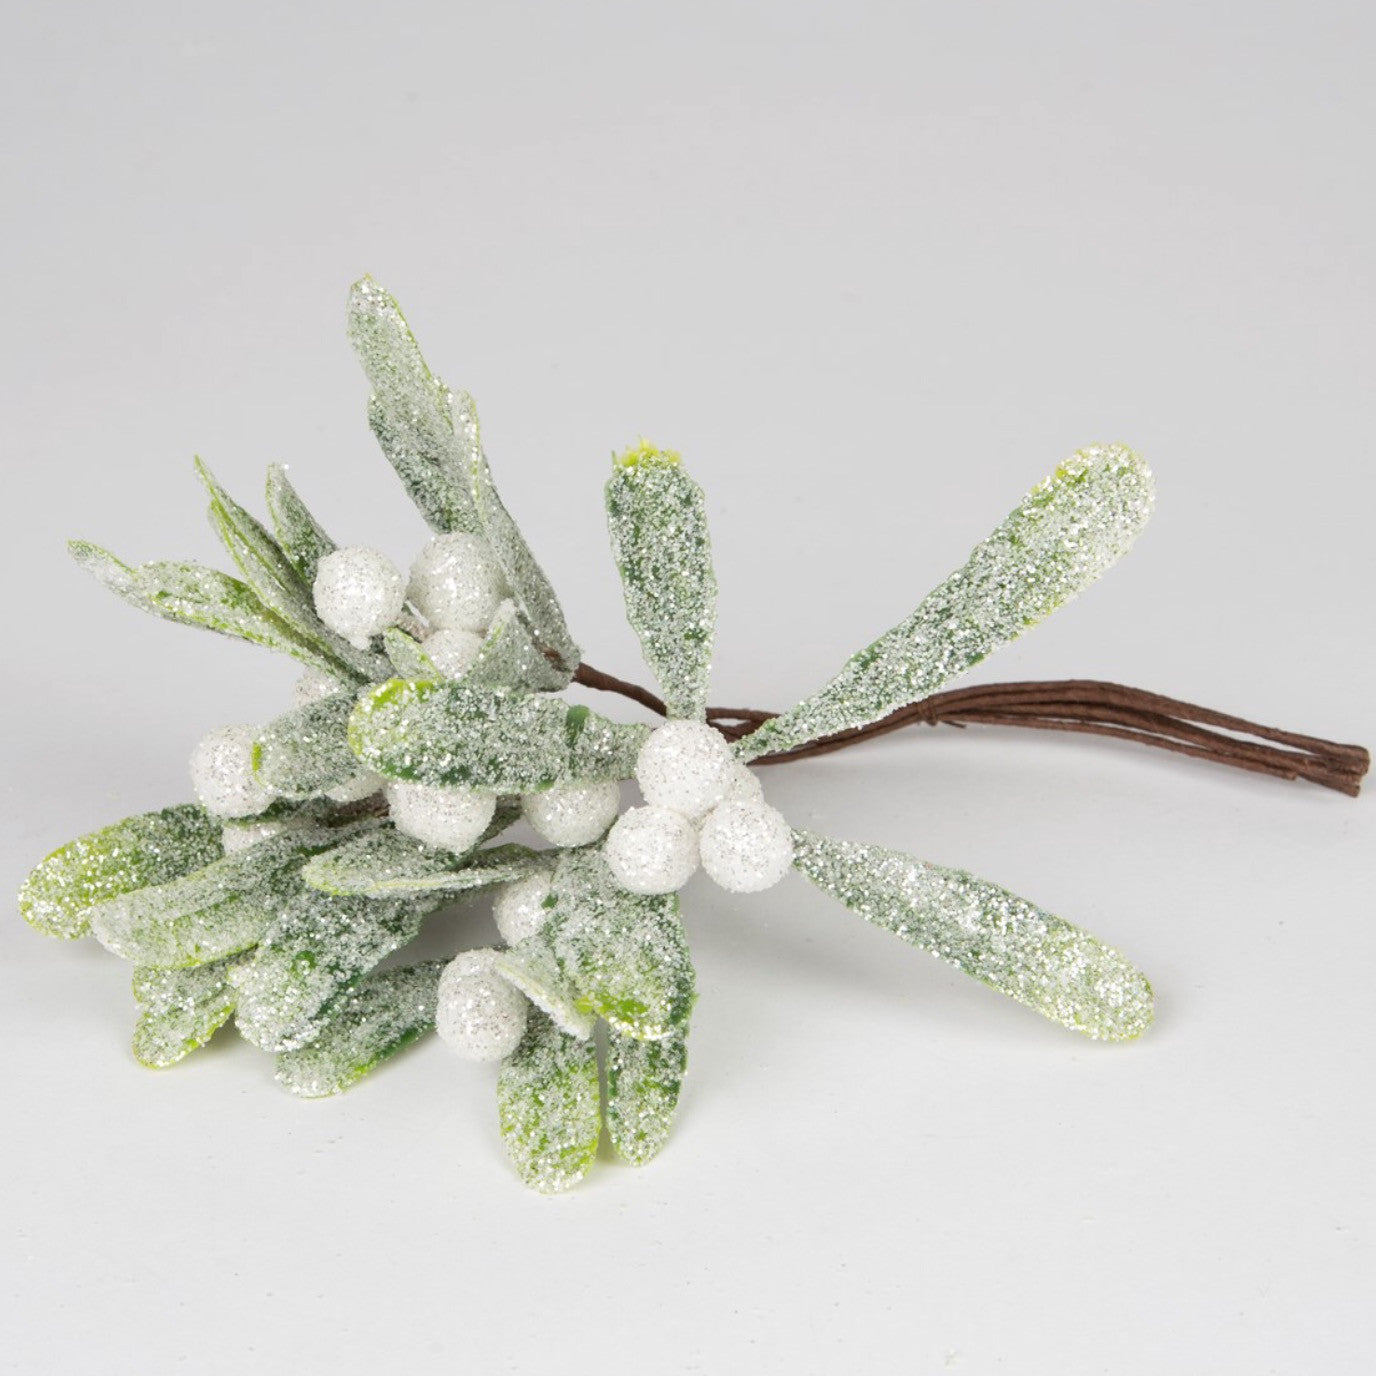 sass belle silver mistletoe branch christmas decoration - Mistletoe Christmas Decoration